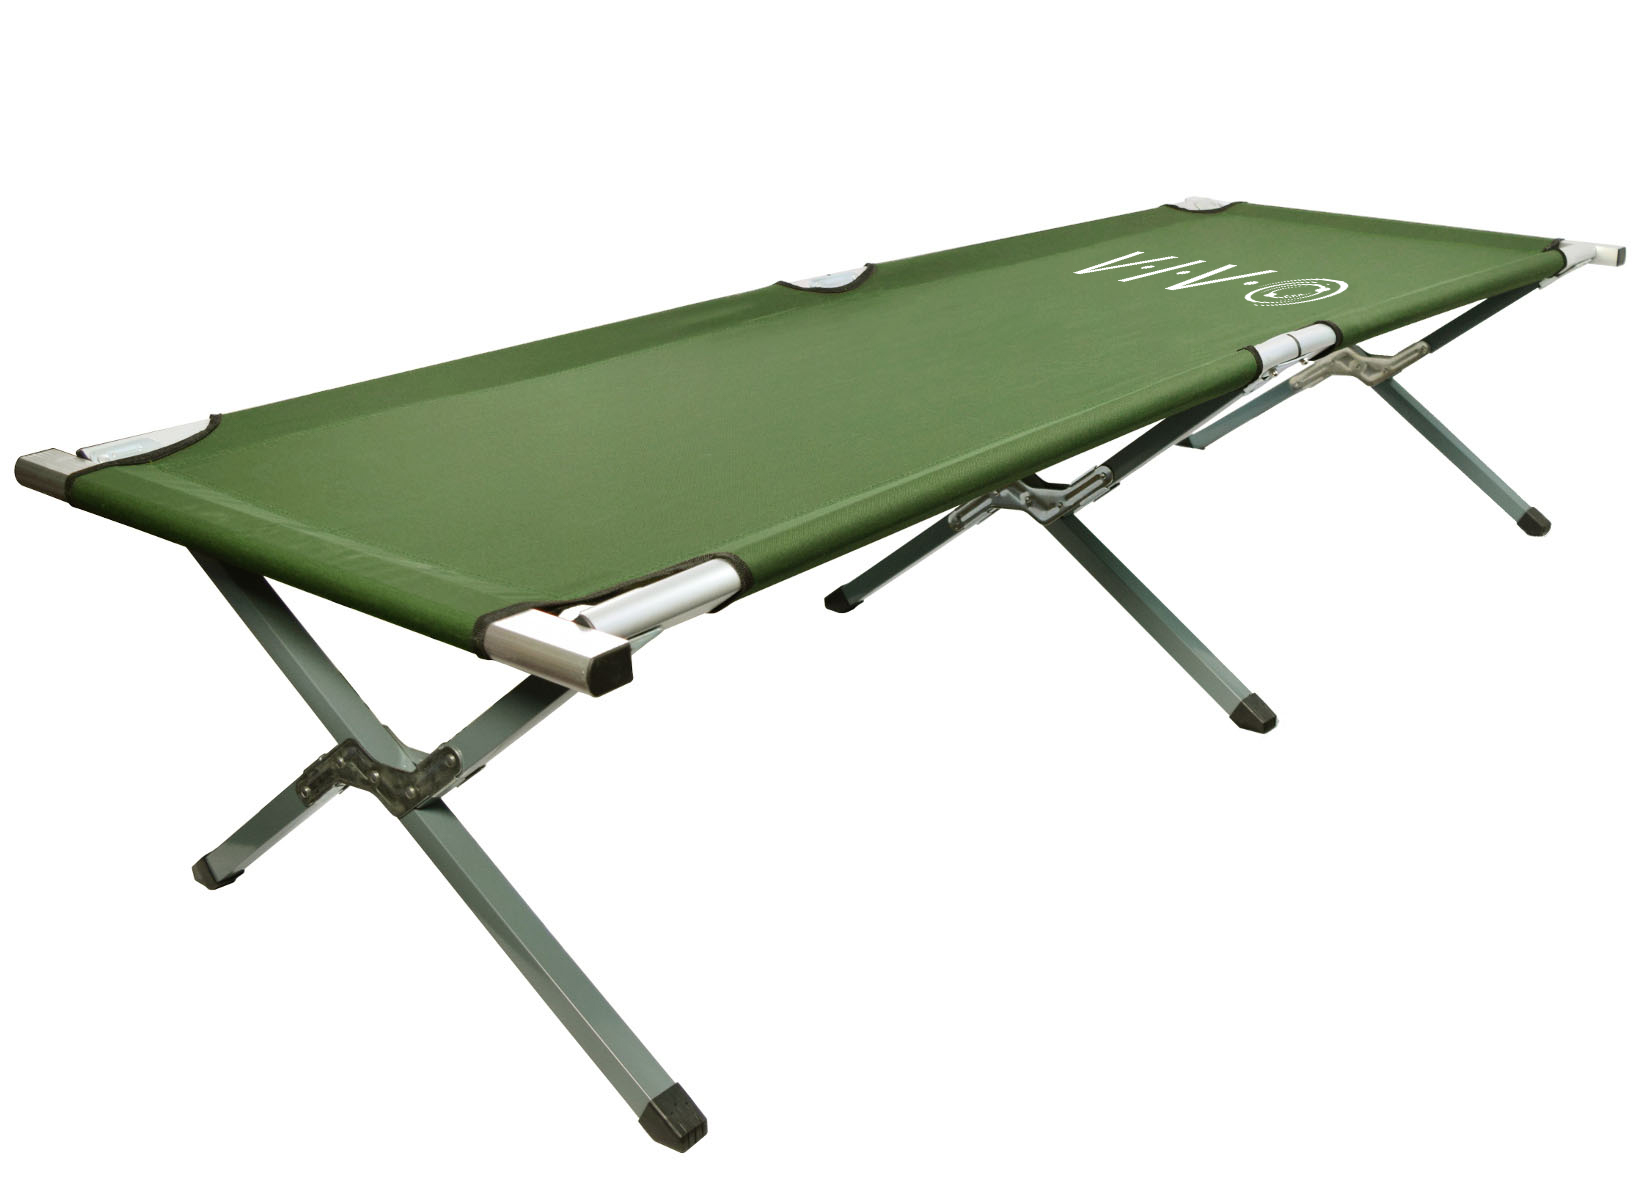 VIVO Green Cot Fold up Bed, Folding, Portable for Camping with Carry Bag (COT-V01) by Vivo